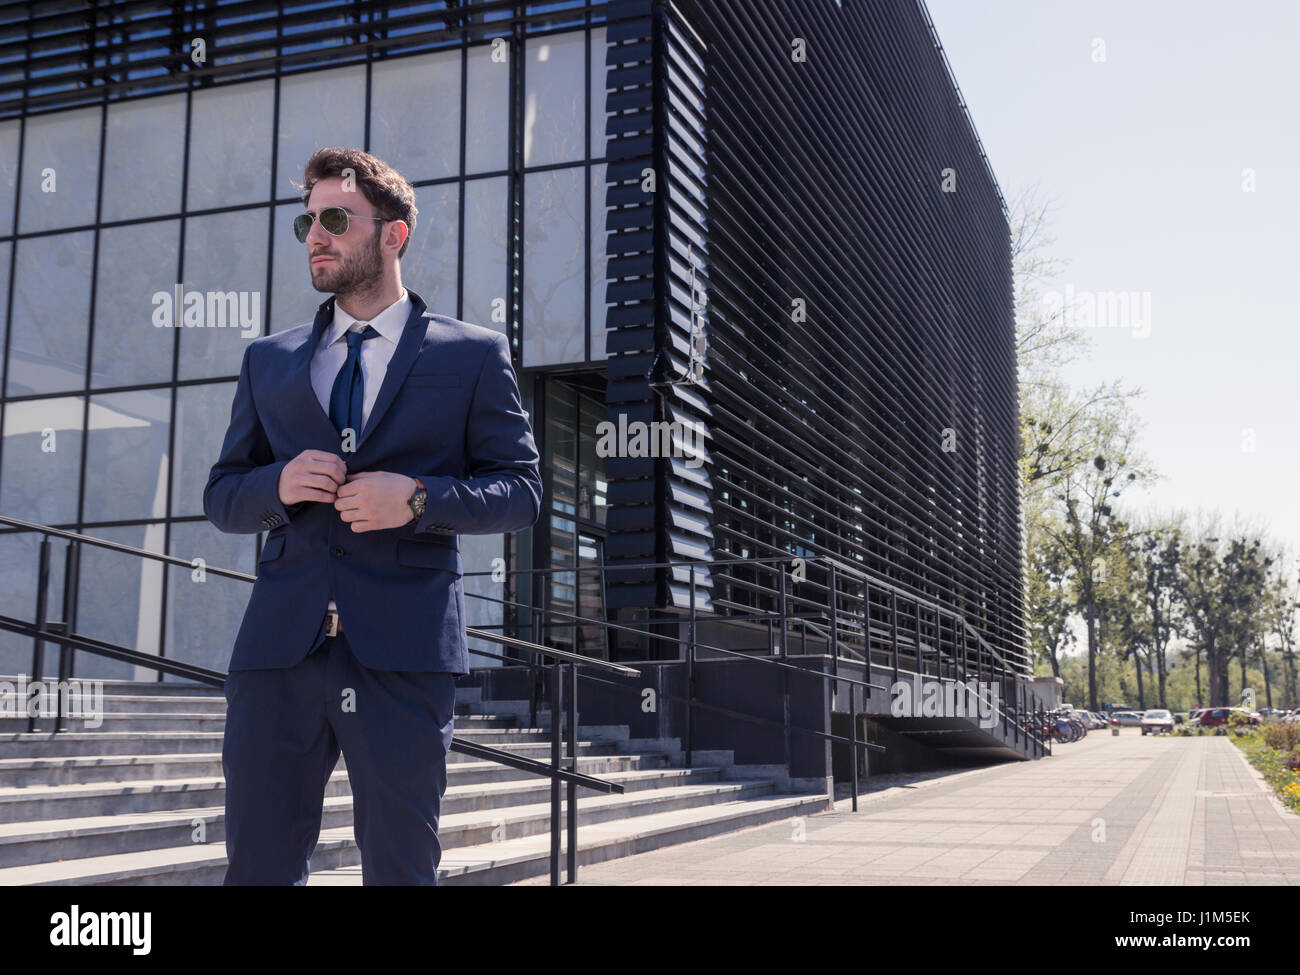 one young man, formal wear, suit tie sunglasses, buttoning suit, street modern building, outdoors day - Stock Image